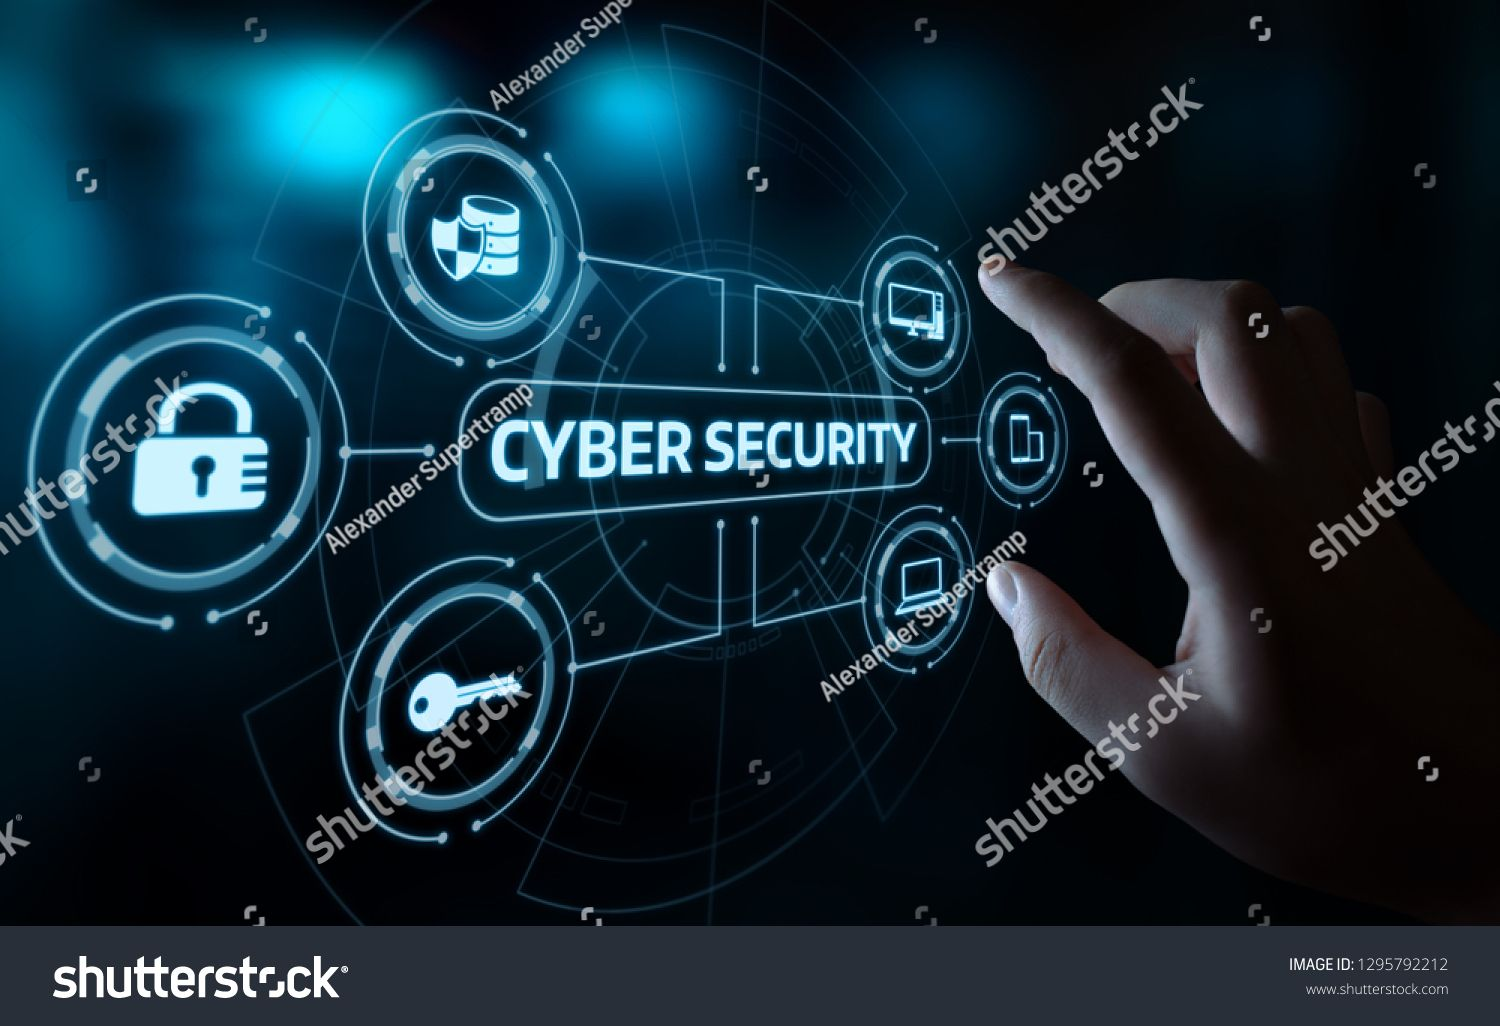 Cyber Security Data Protection Business Technology Stock Edit Now